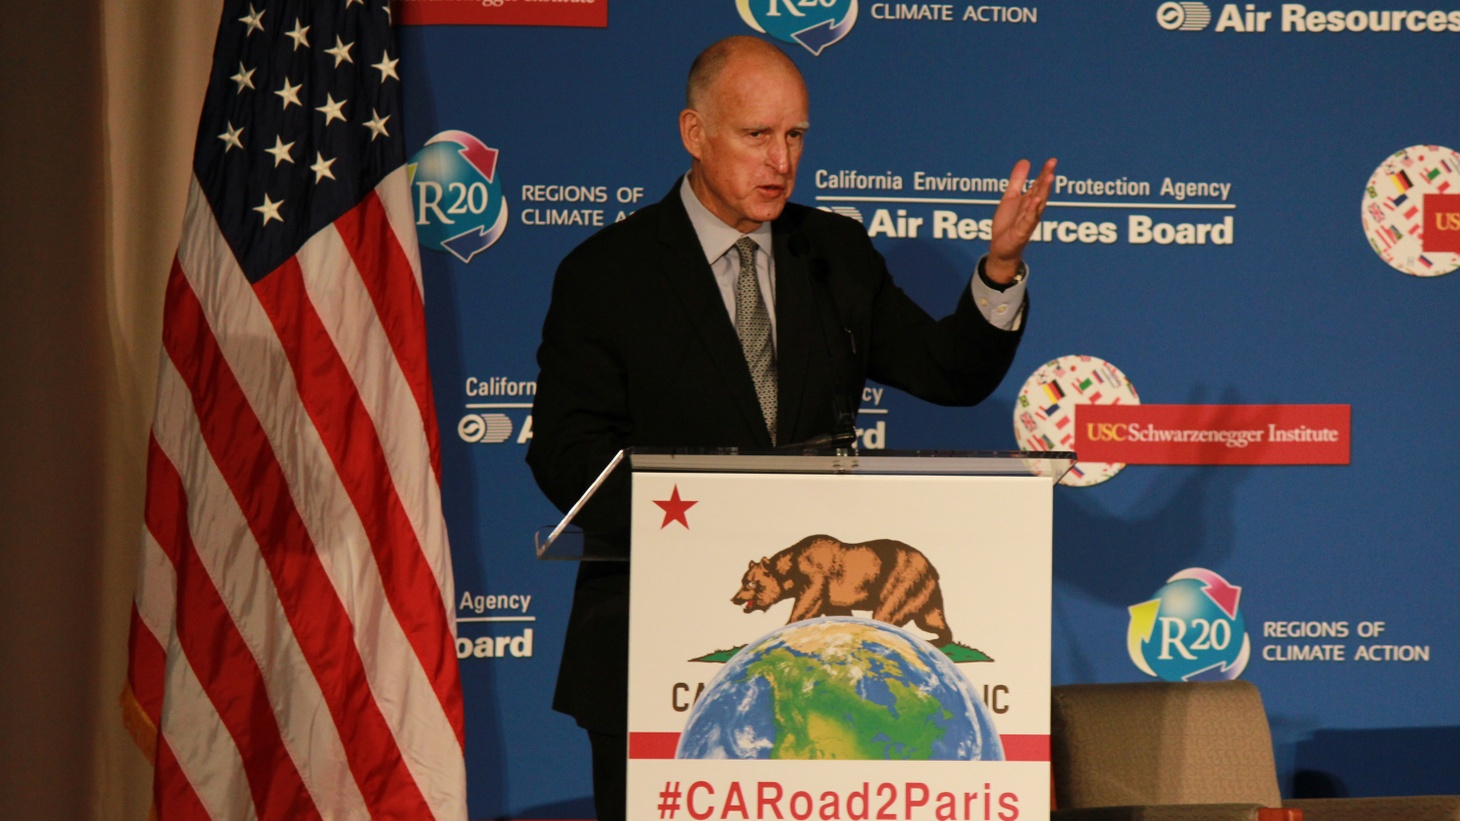 The Governor of California oversees the world's eighth largest economy, so it makes sense for him to join more than 100 heads of state at the Climate Change Summit.